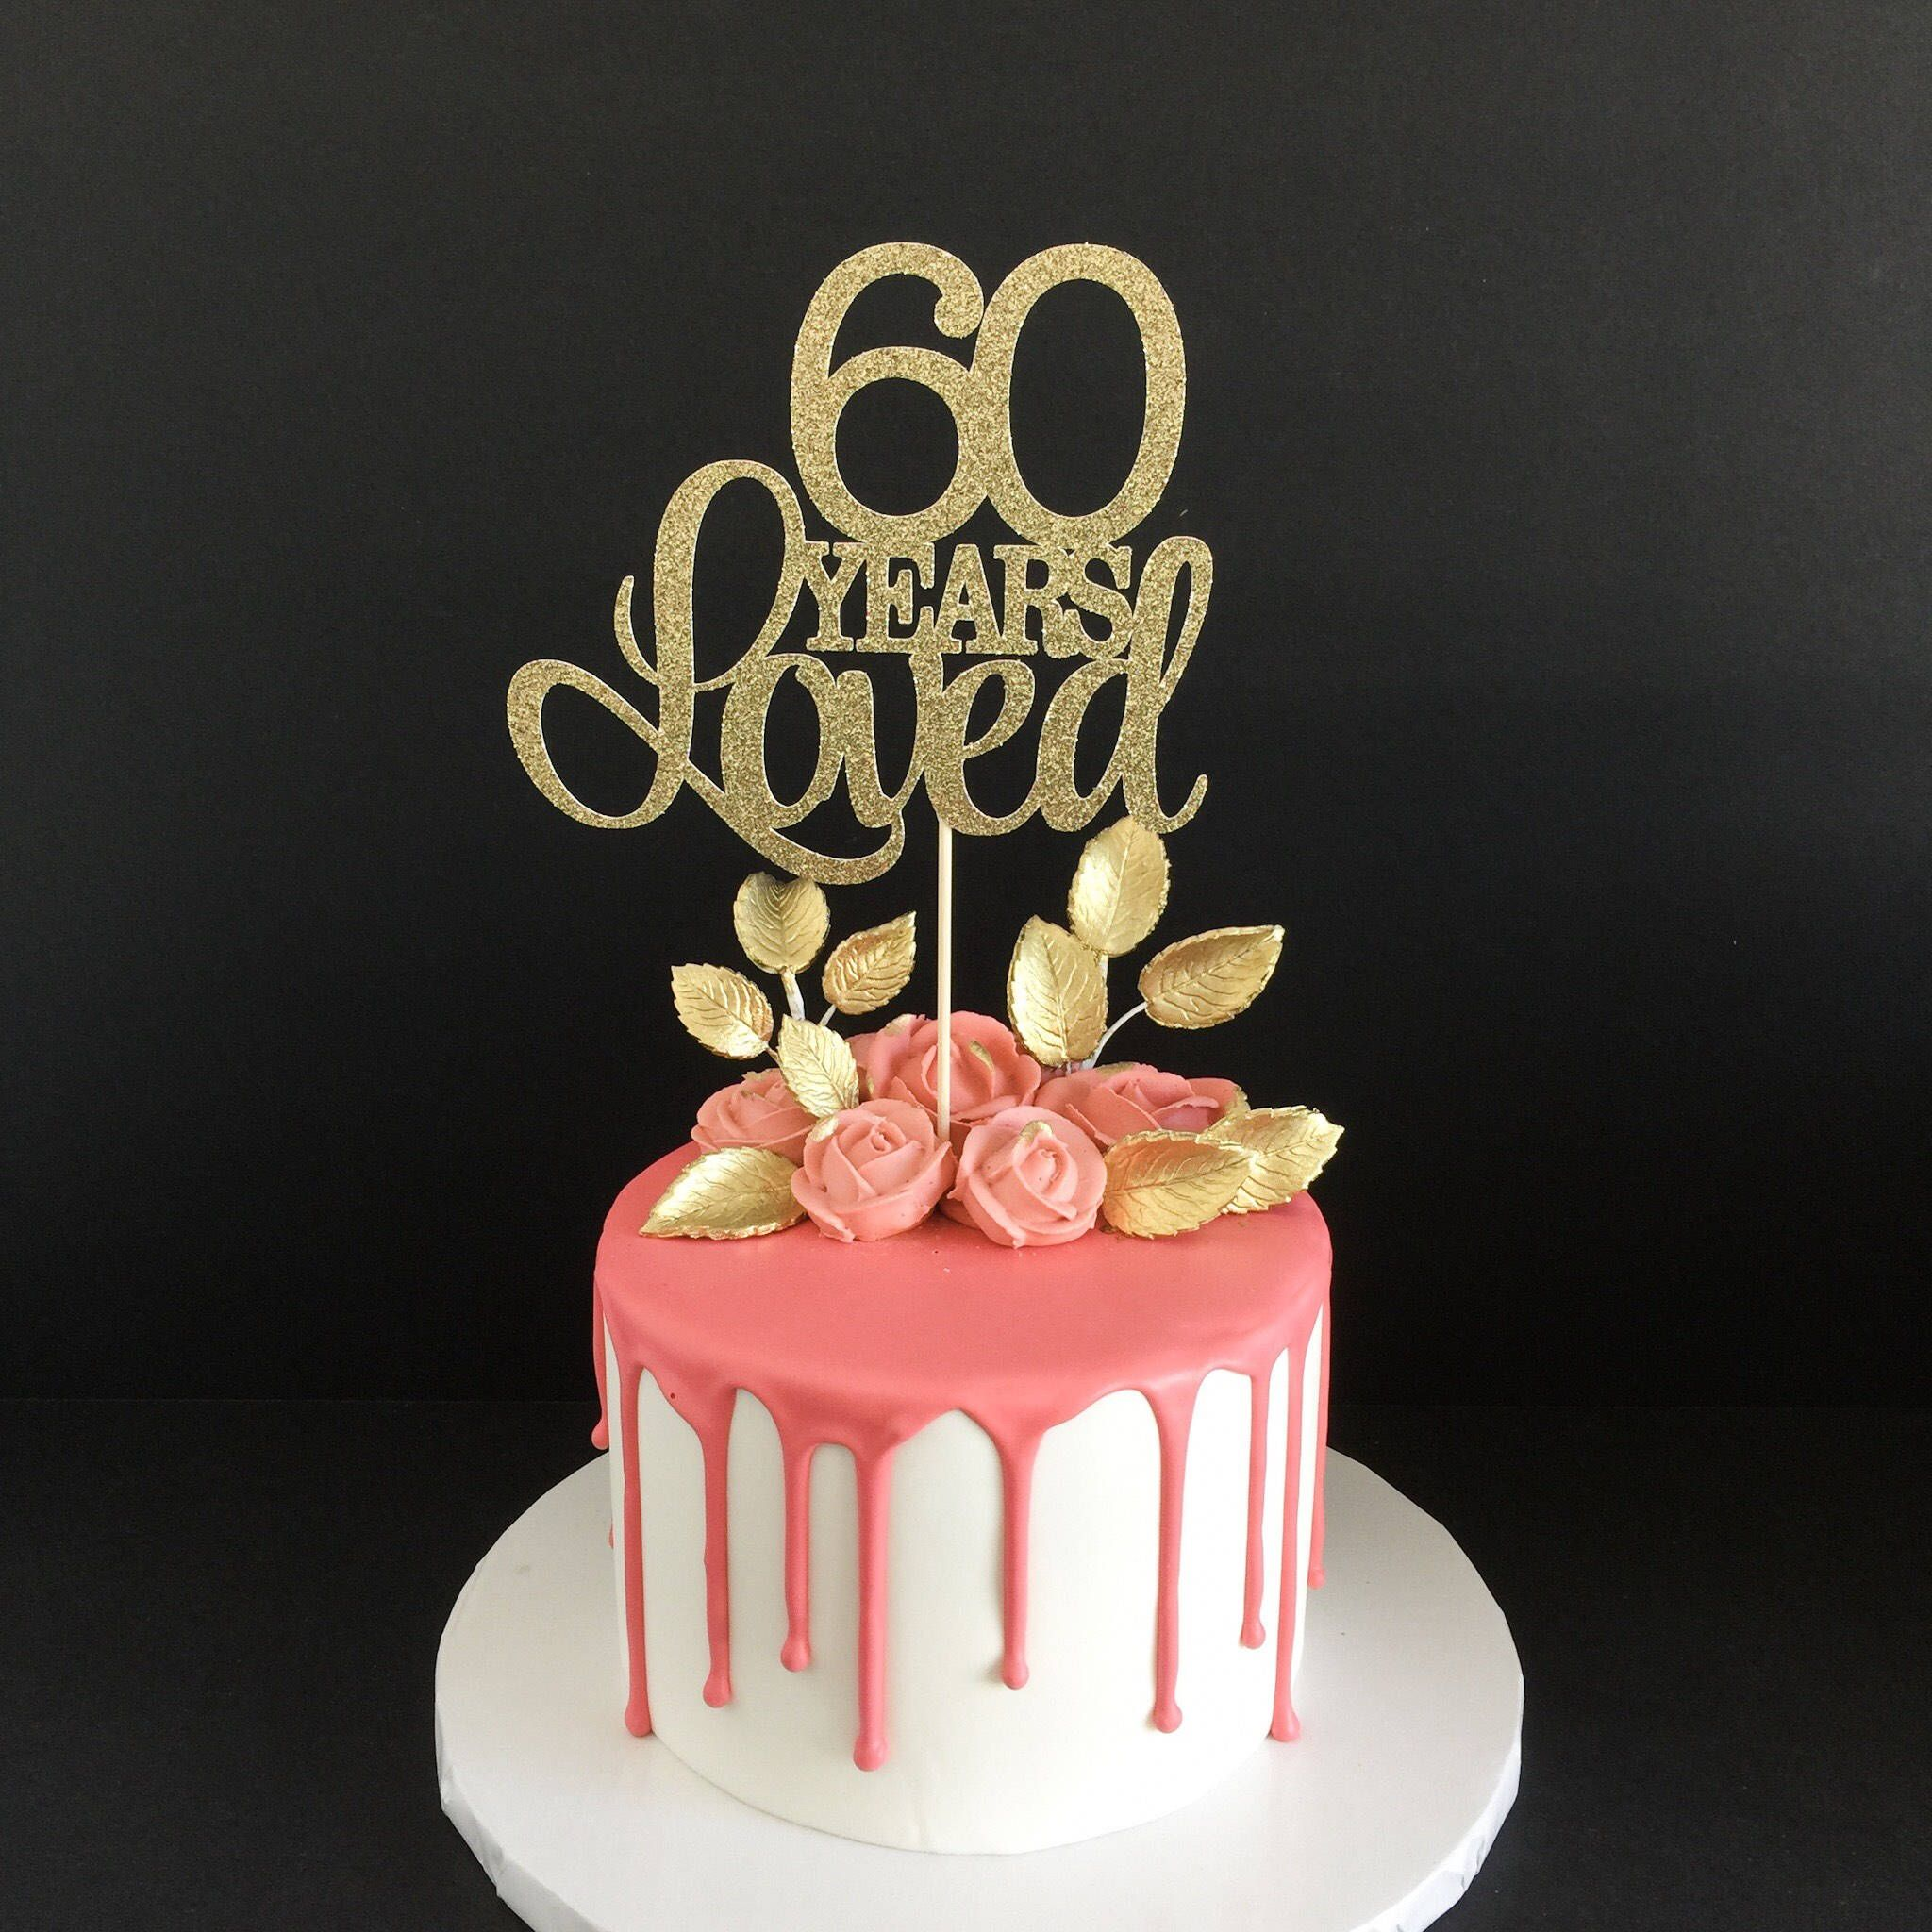 60 Years Loved Cake Topper 60th Birthday Cake Topper